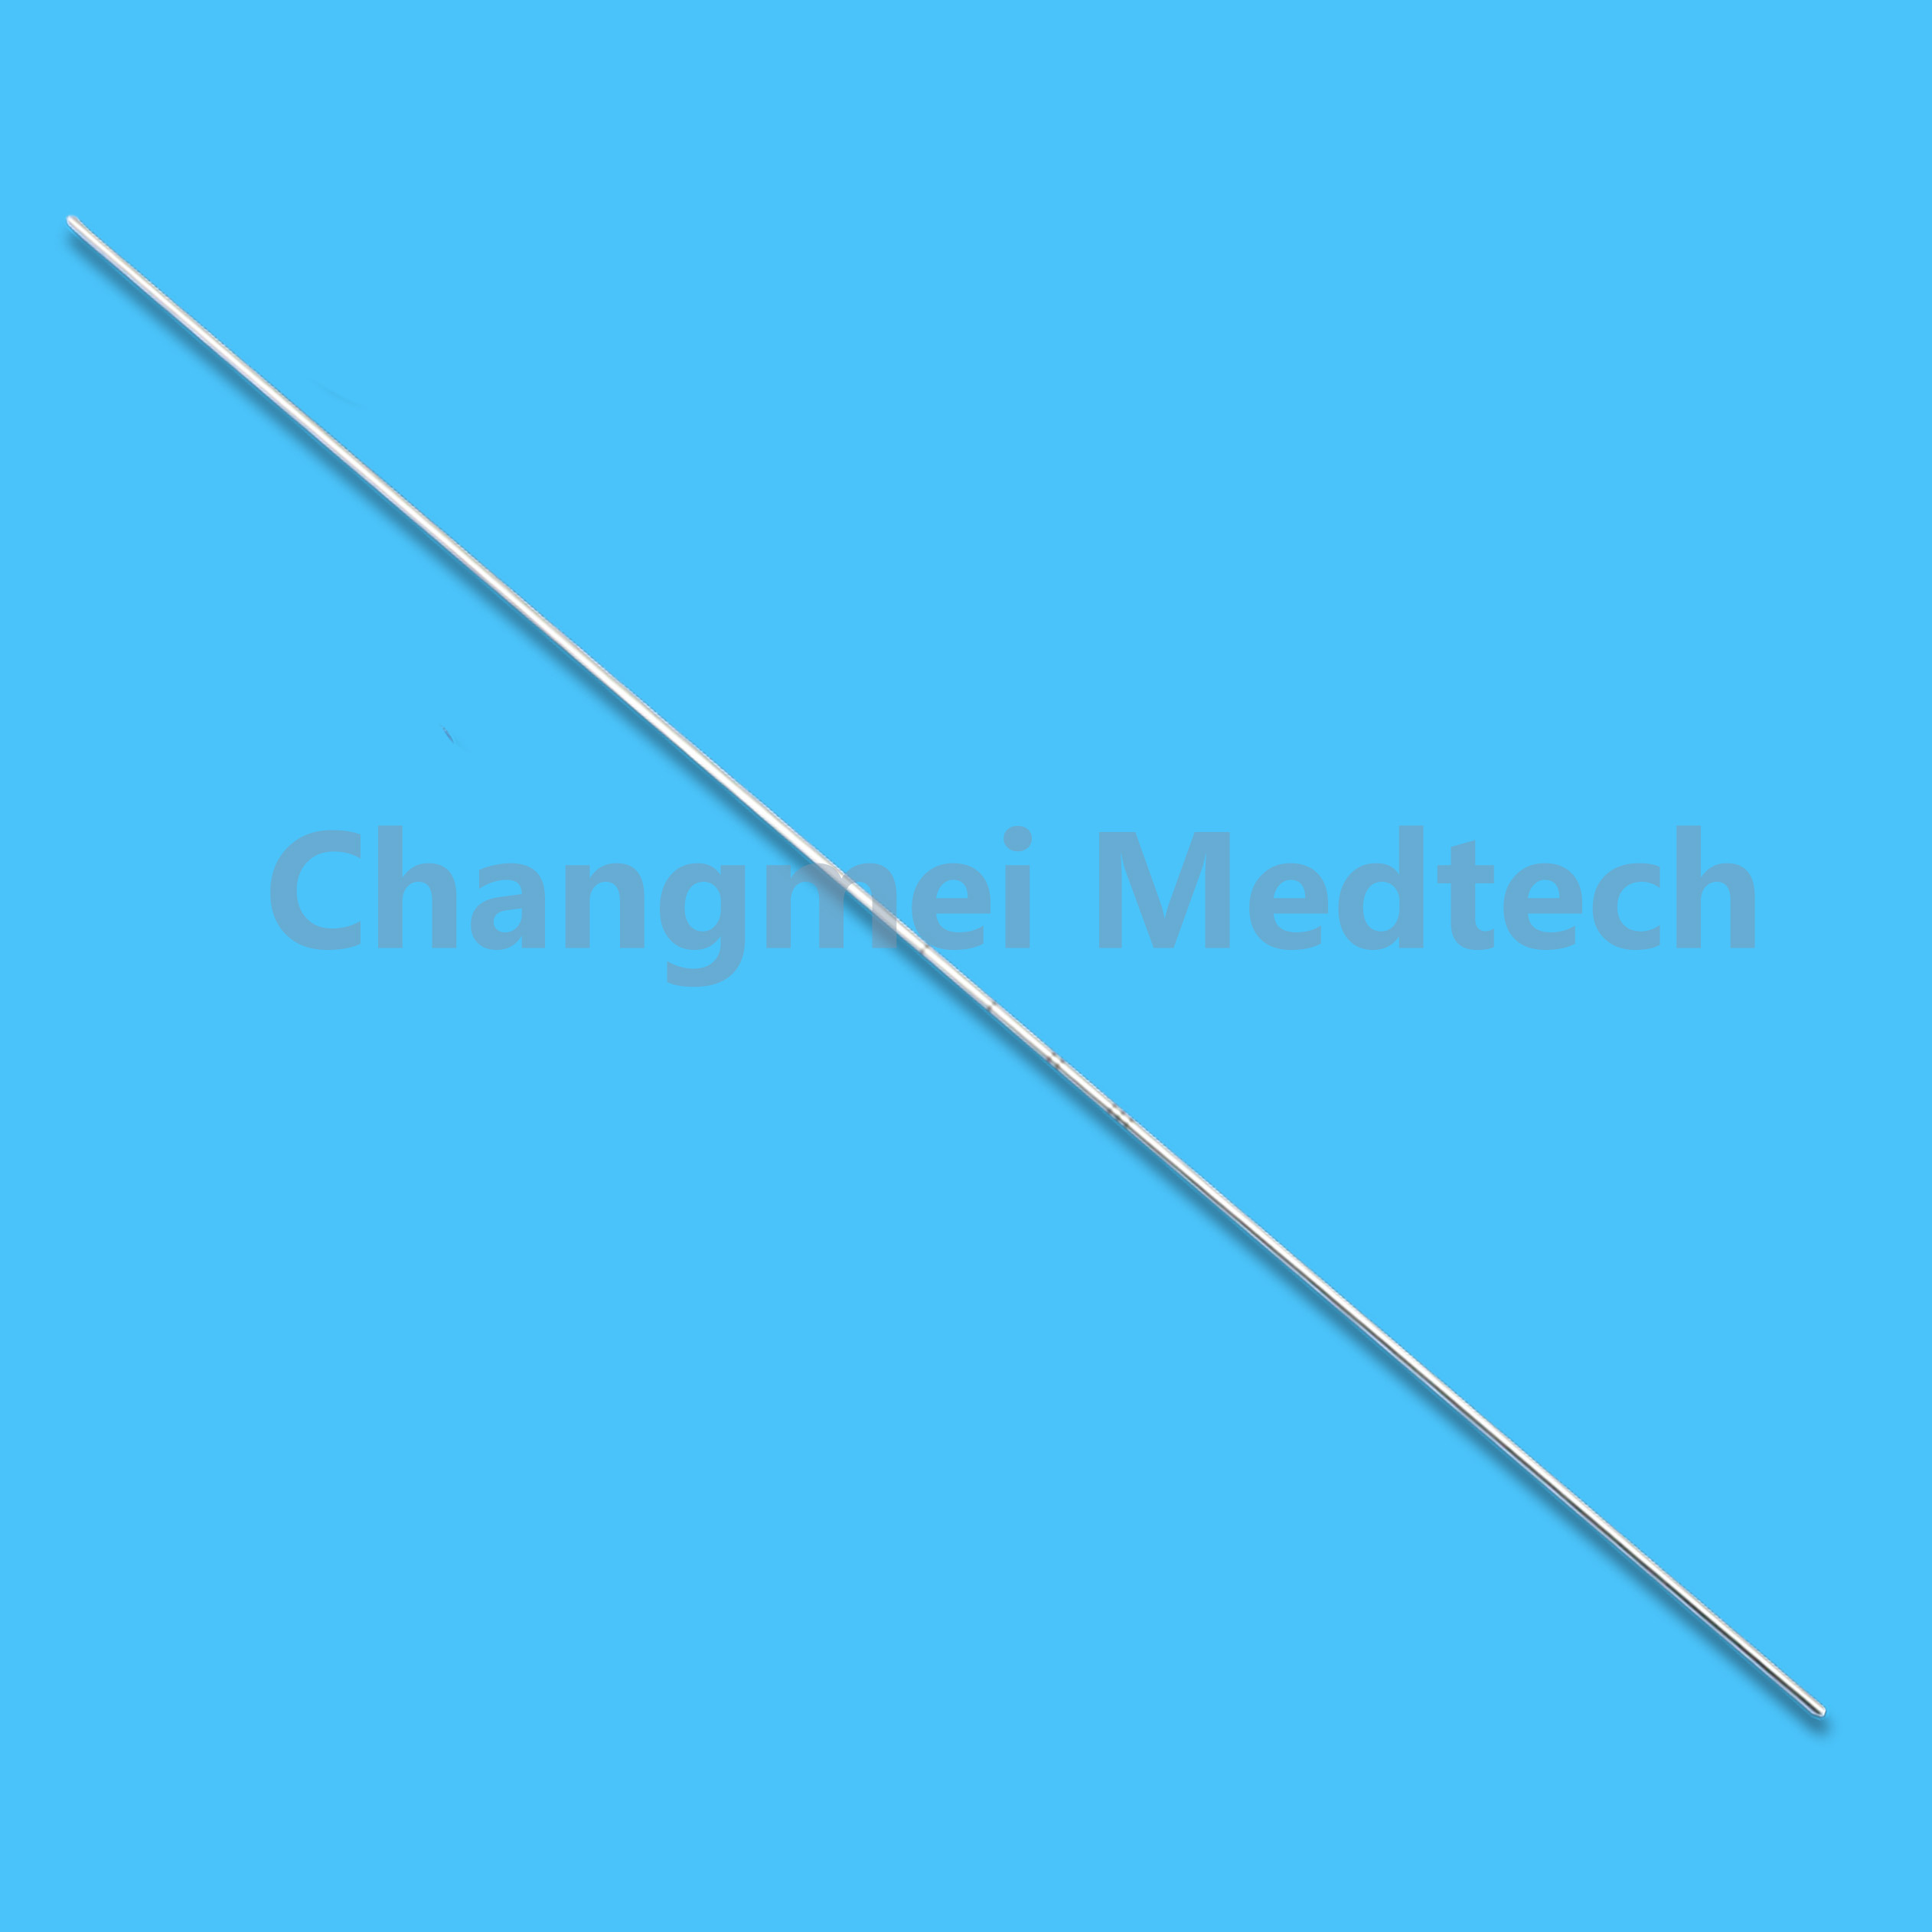 China Changmei Medtech Kyphoplasty Tool Kit Guide Wire Photos ...